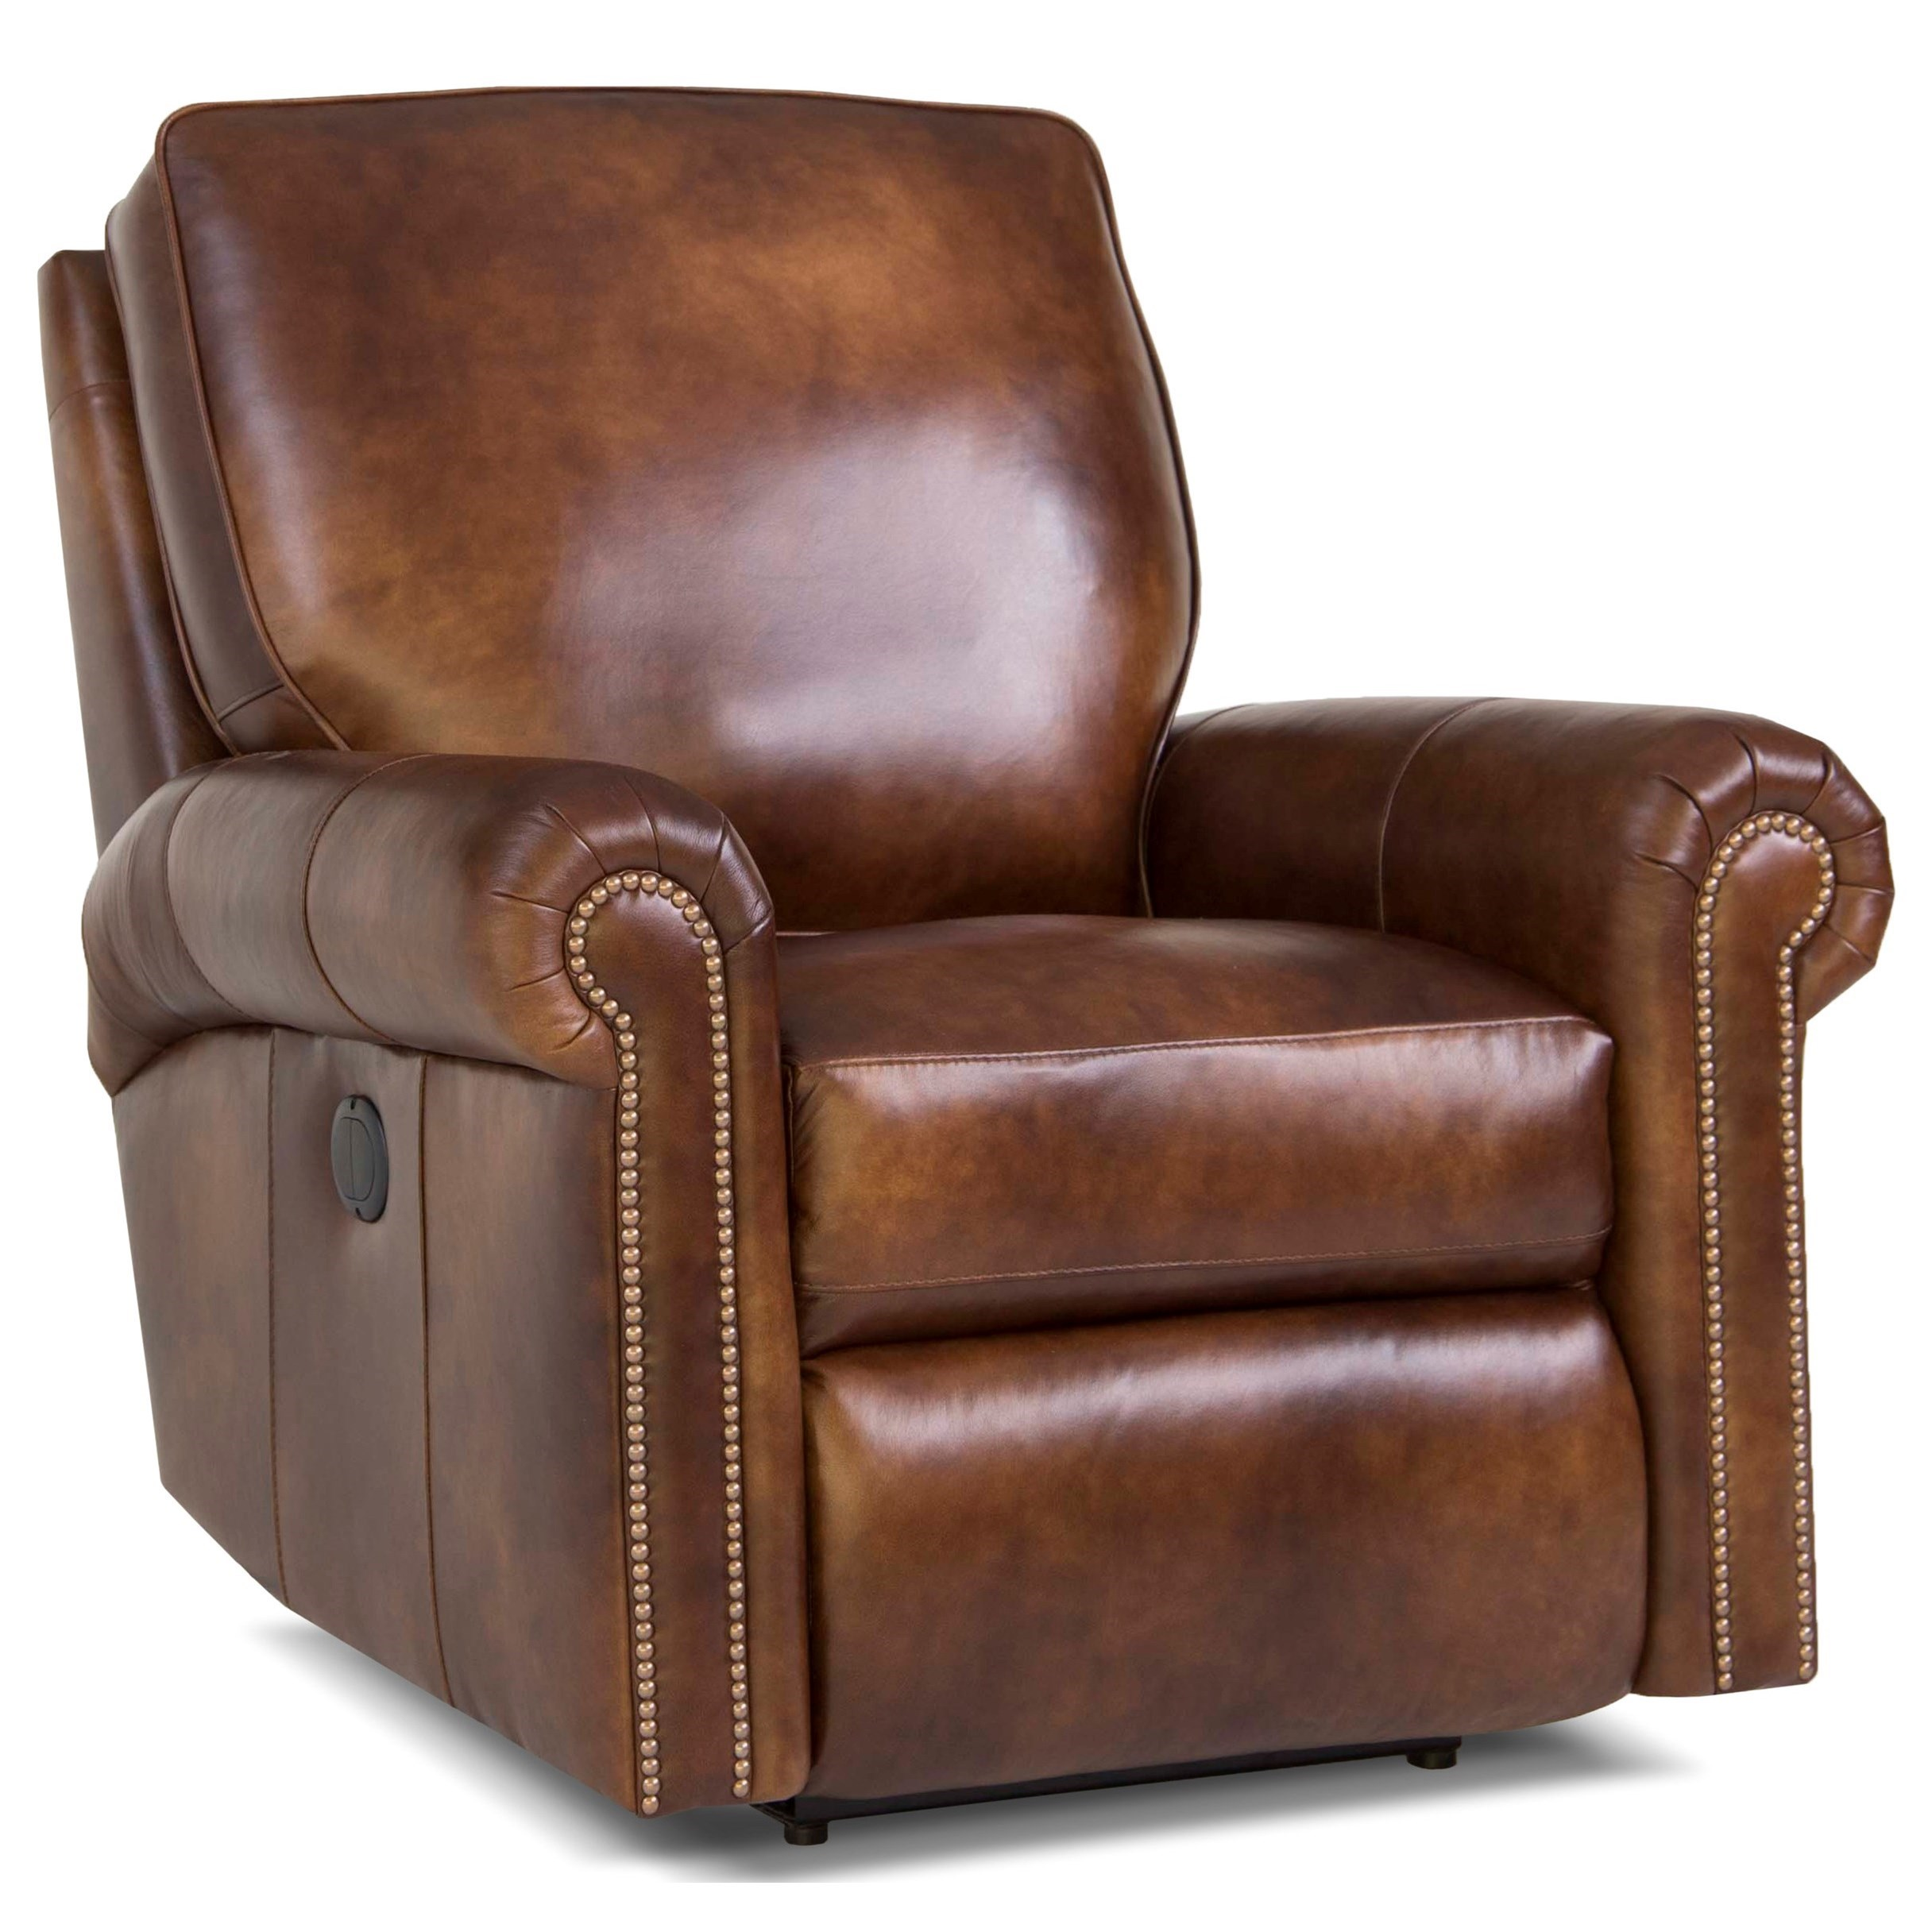 416 Motorized Recliner Chair by Smith Brothers at Mueller Furniture